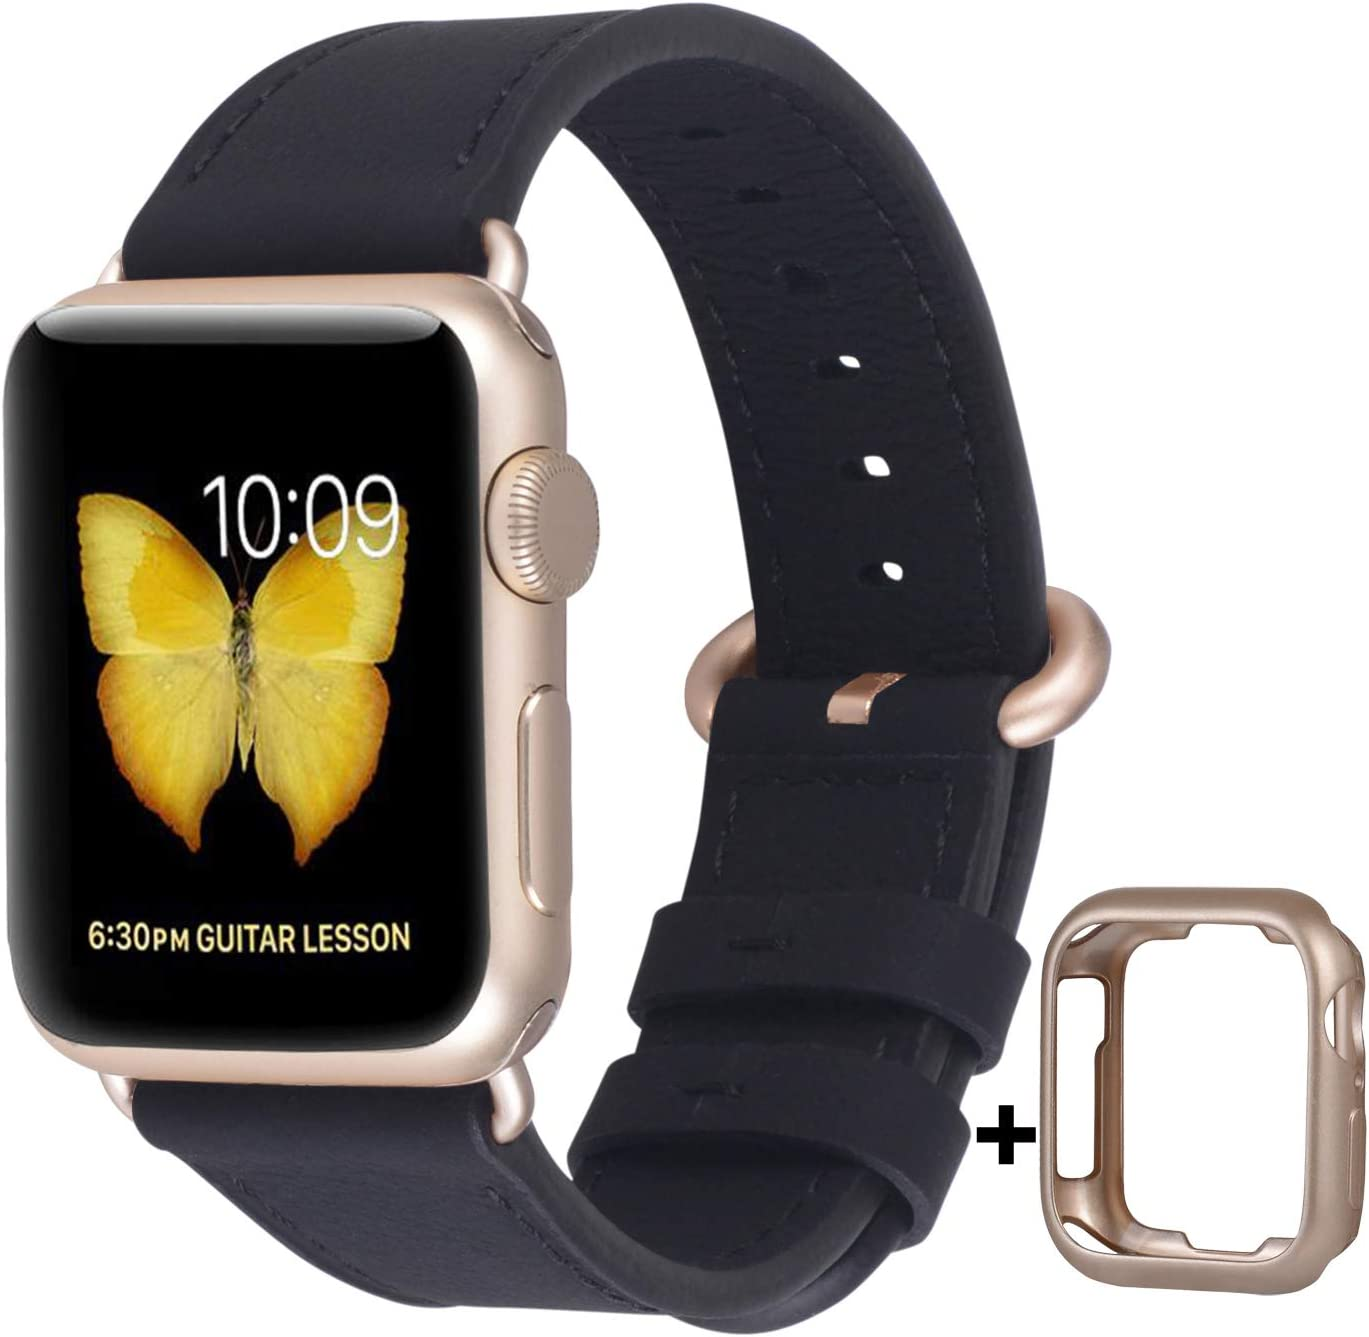 JSGJMY Compatible with Apple Watch Band 38mm 40mm 42mm 44mm Women Men Genuine Leather Replacement Strap for iWatch Series SE 6 5 4 3 2 1 (Black with Champagne Gold Clasp, 38mm/40mm S/M)